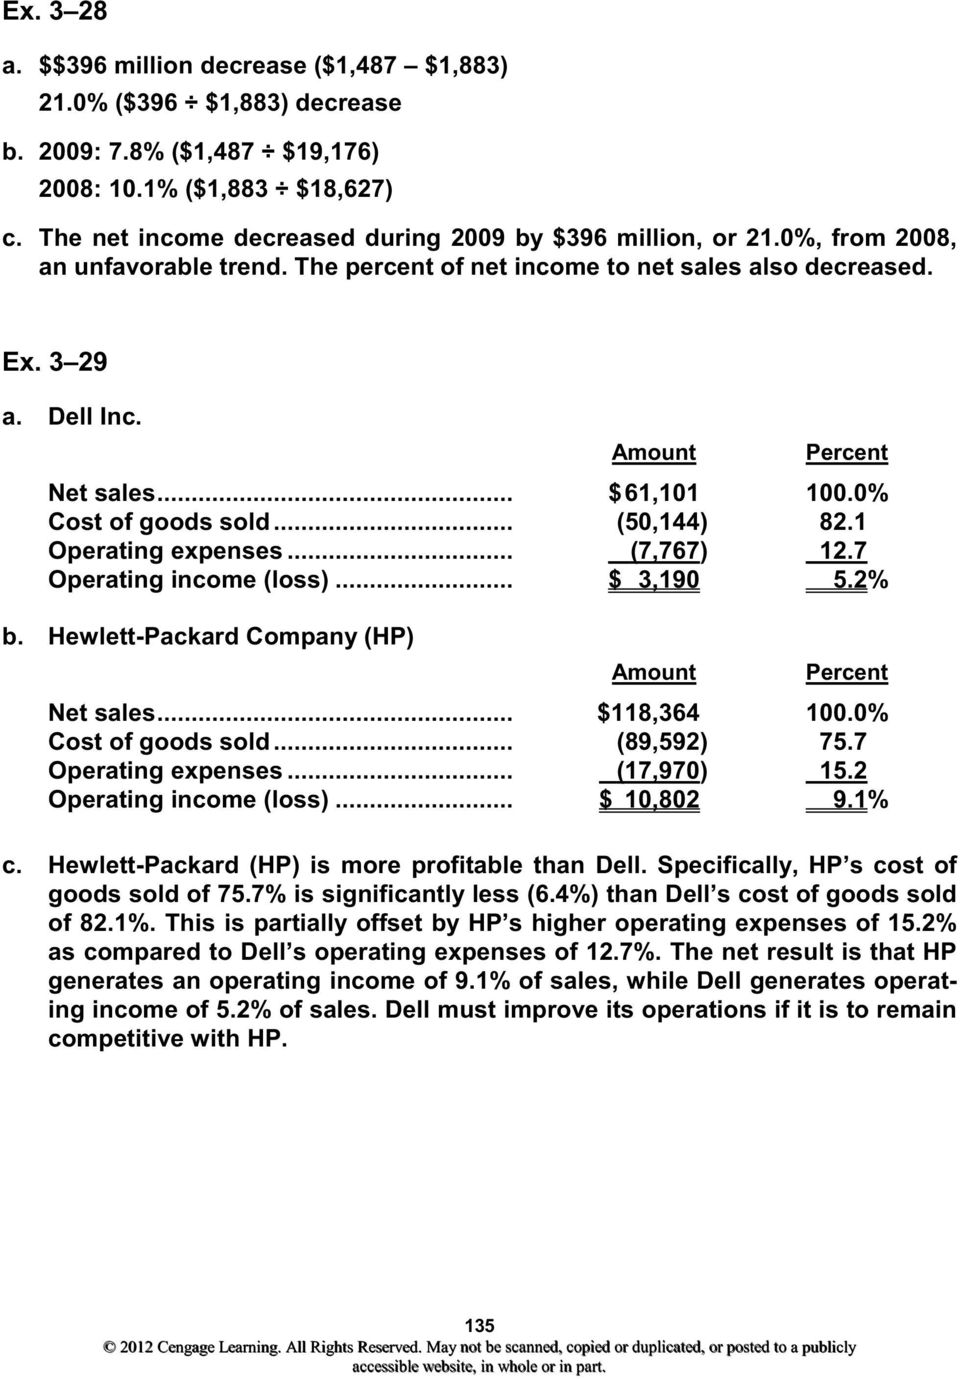 .. $ 61,101 100.0% Cost of goods sold... (50,144) 82.1 Operating expenses... (7,767) 12.7 Operating income (loss)... $ 3,190 5.2% b. Hewlett-Packard Company (HP) Amount Percent Net sales.